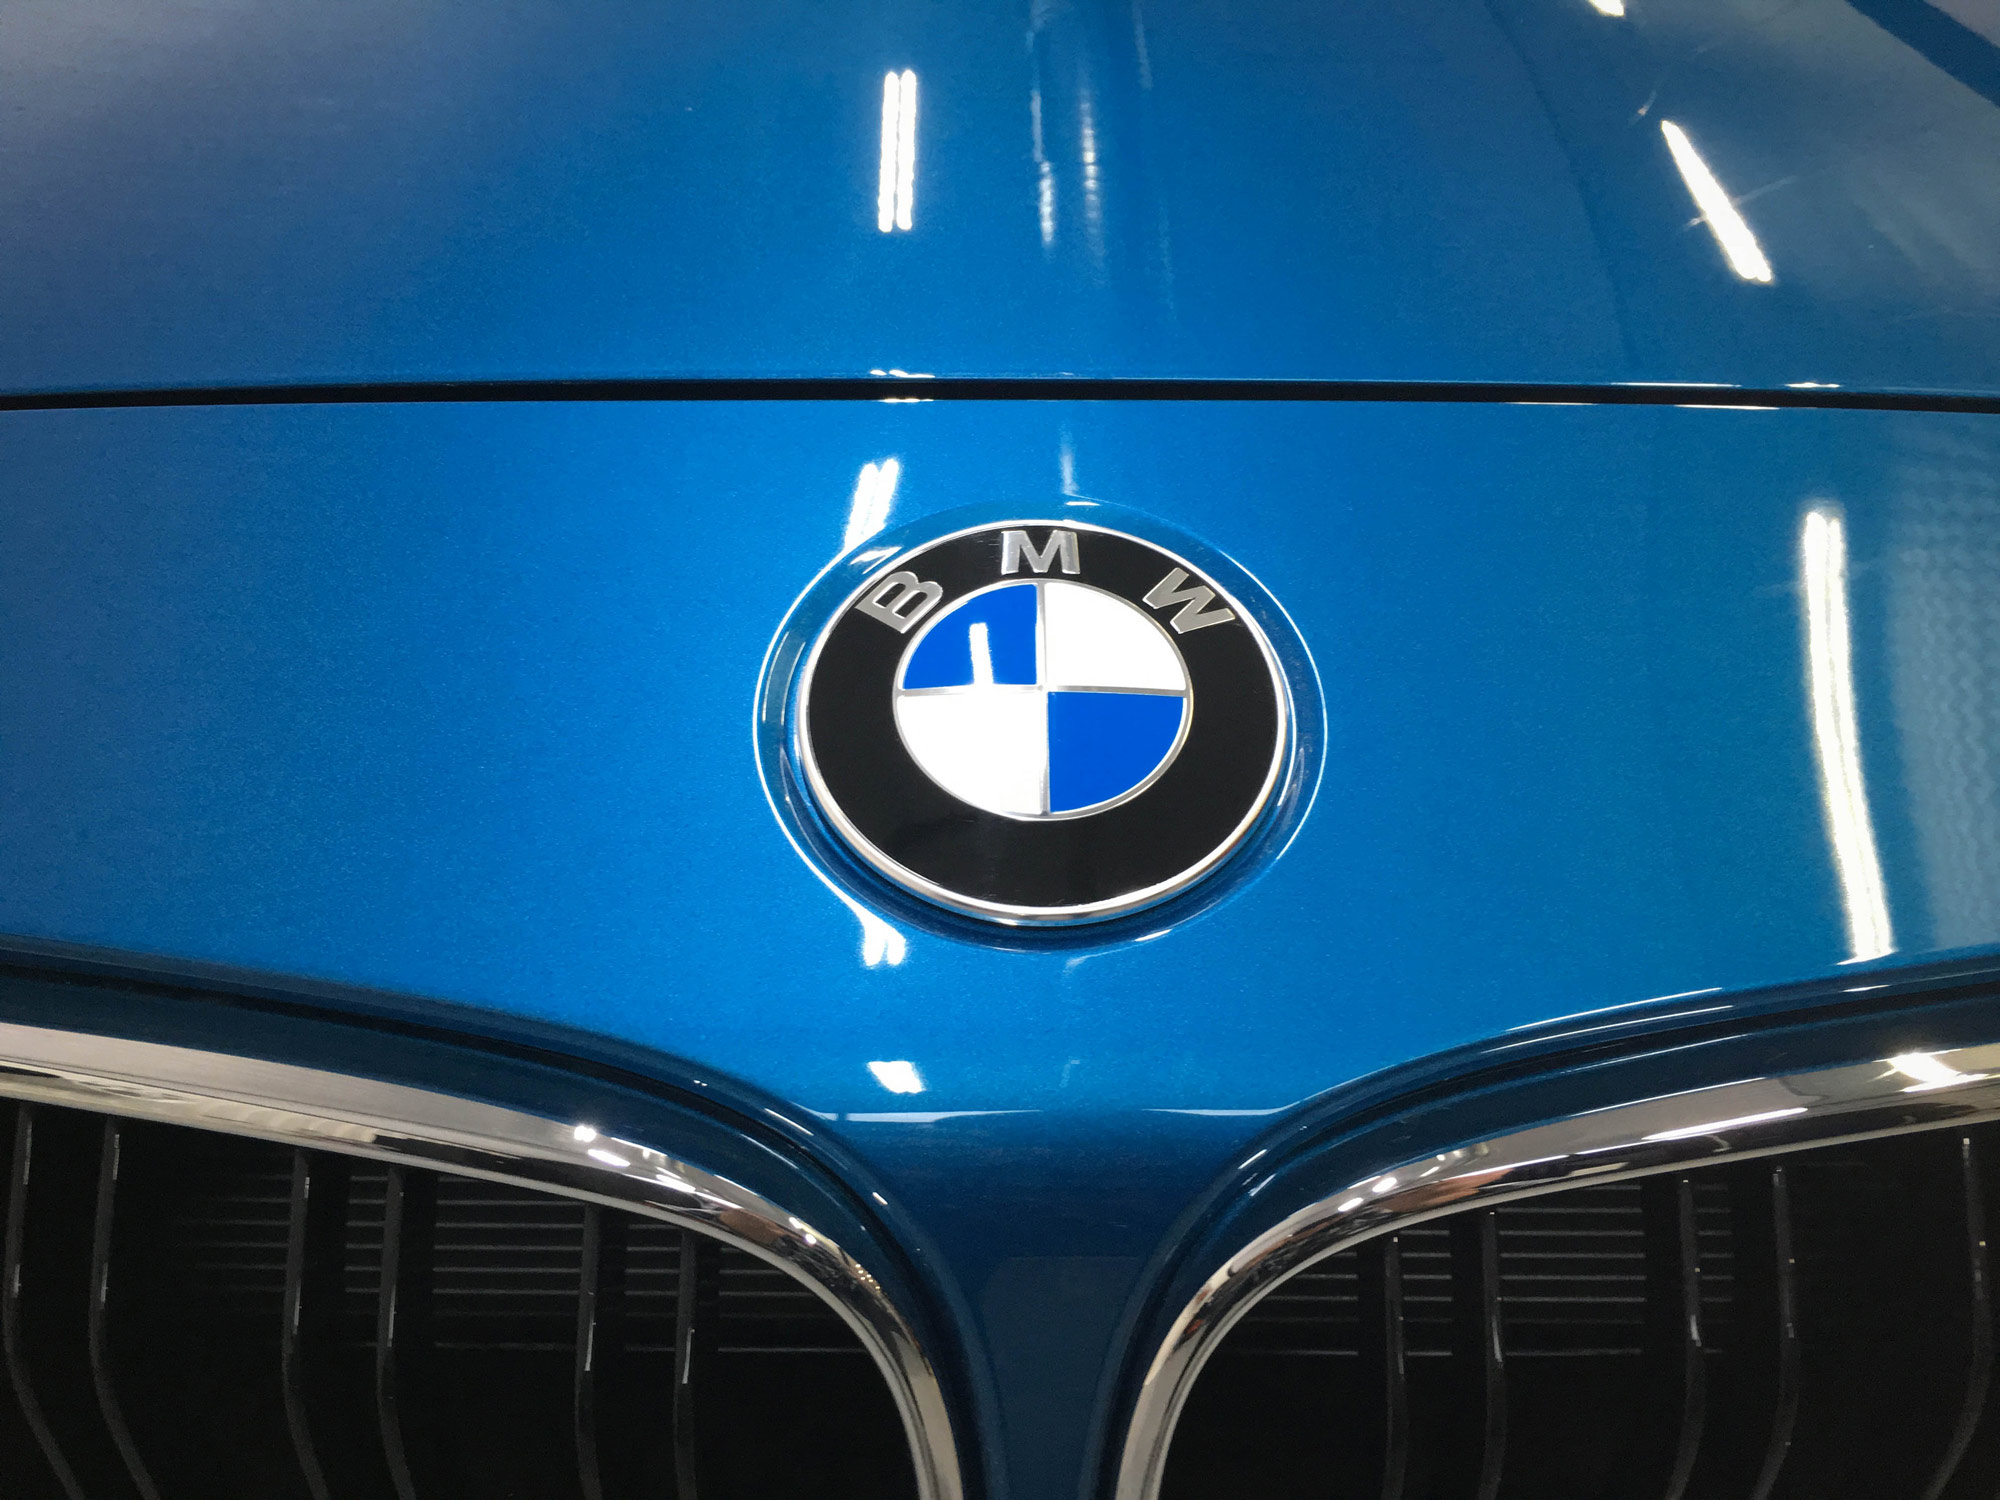 BMW M2 - BMW Badge